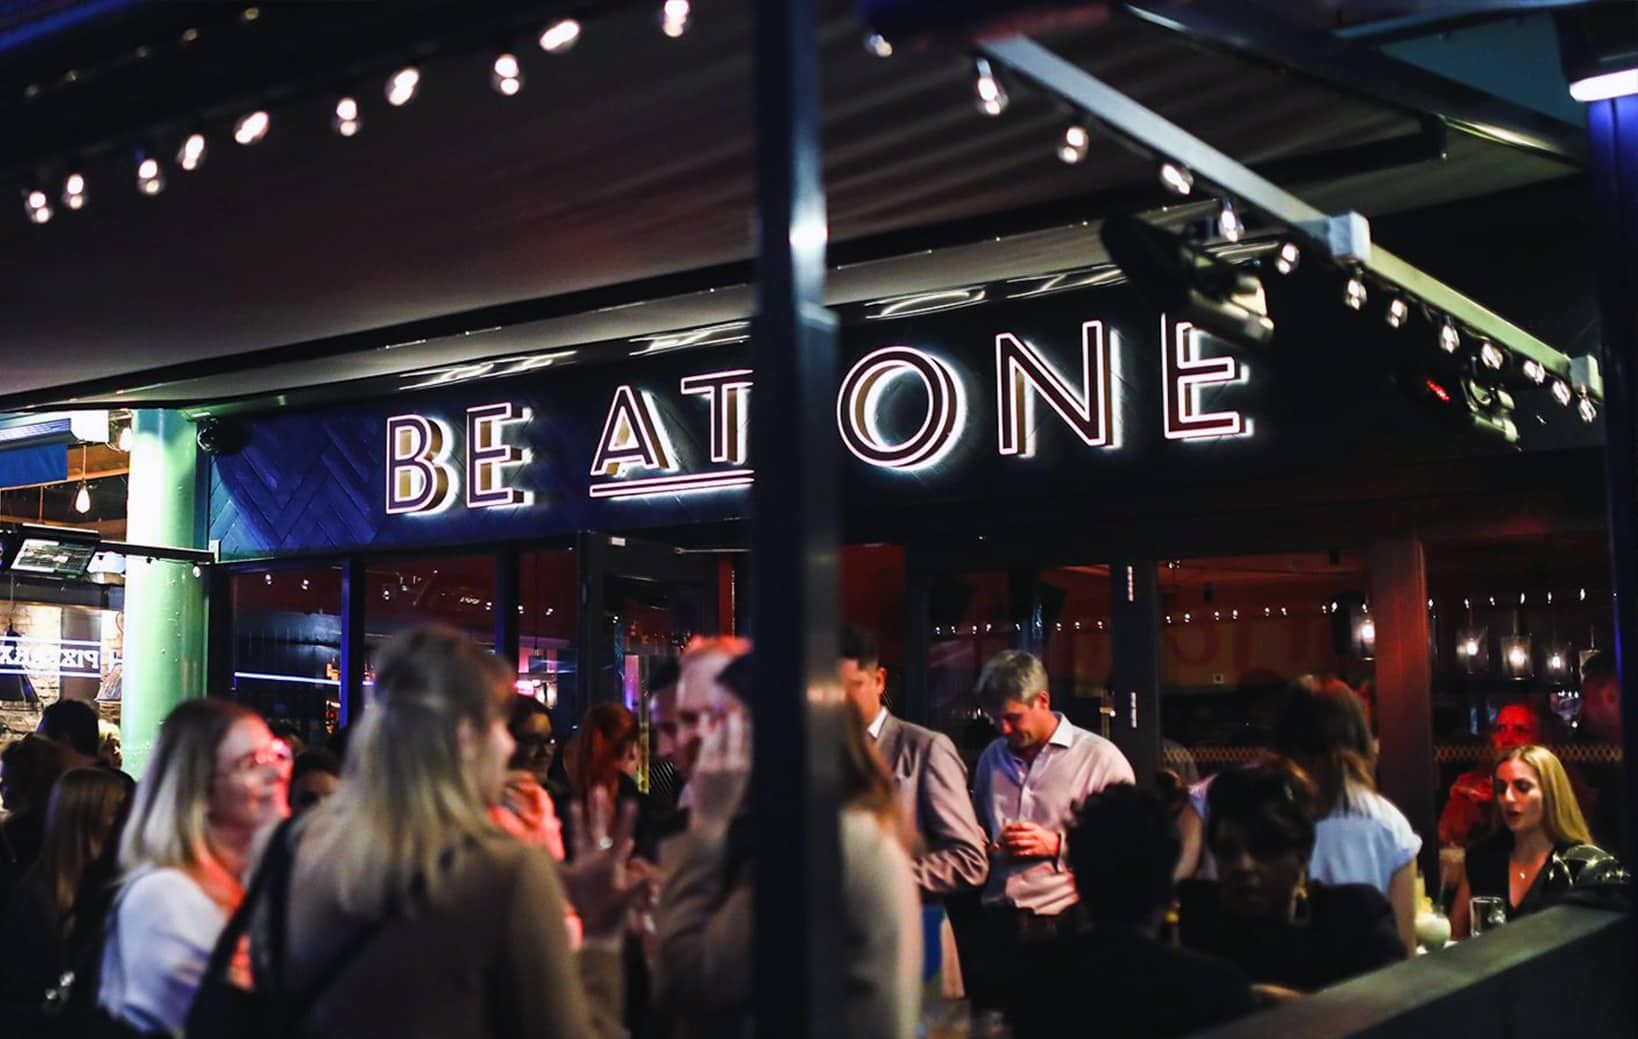 2021-venues-be-at-one